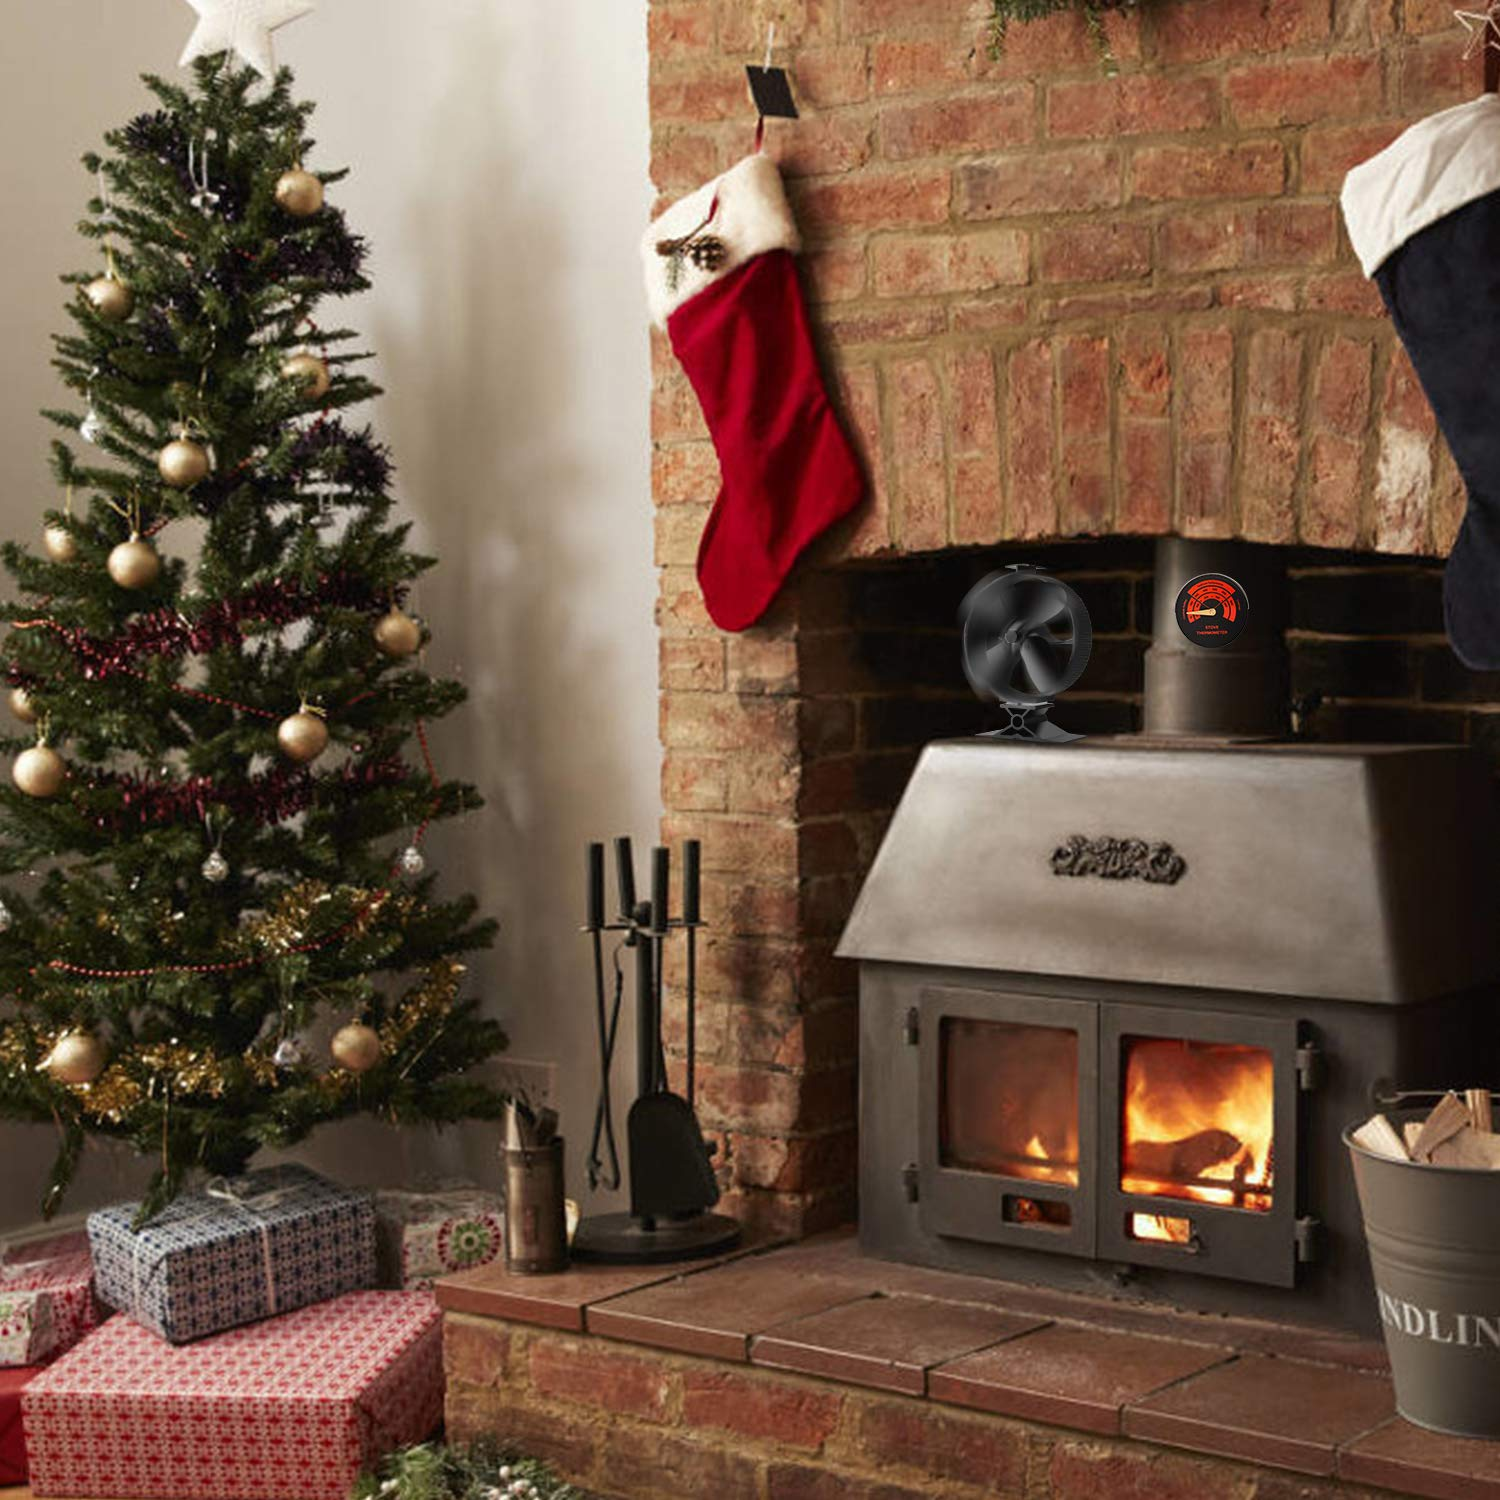 Questions And Solutions To Wood Burning Stove